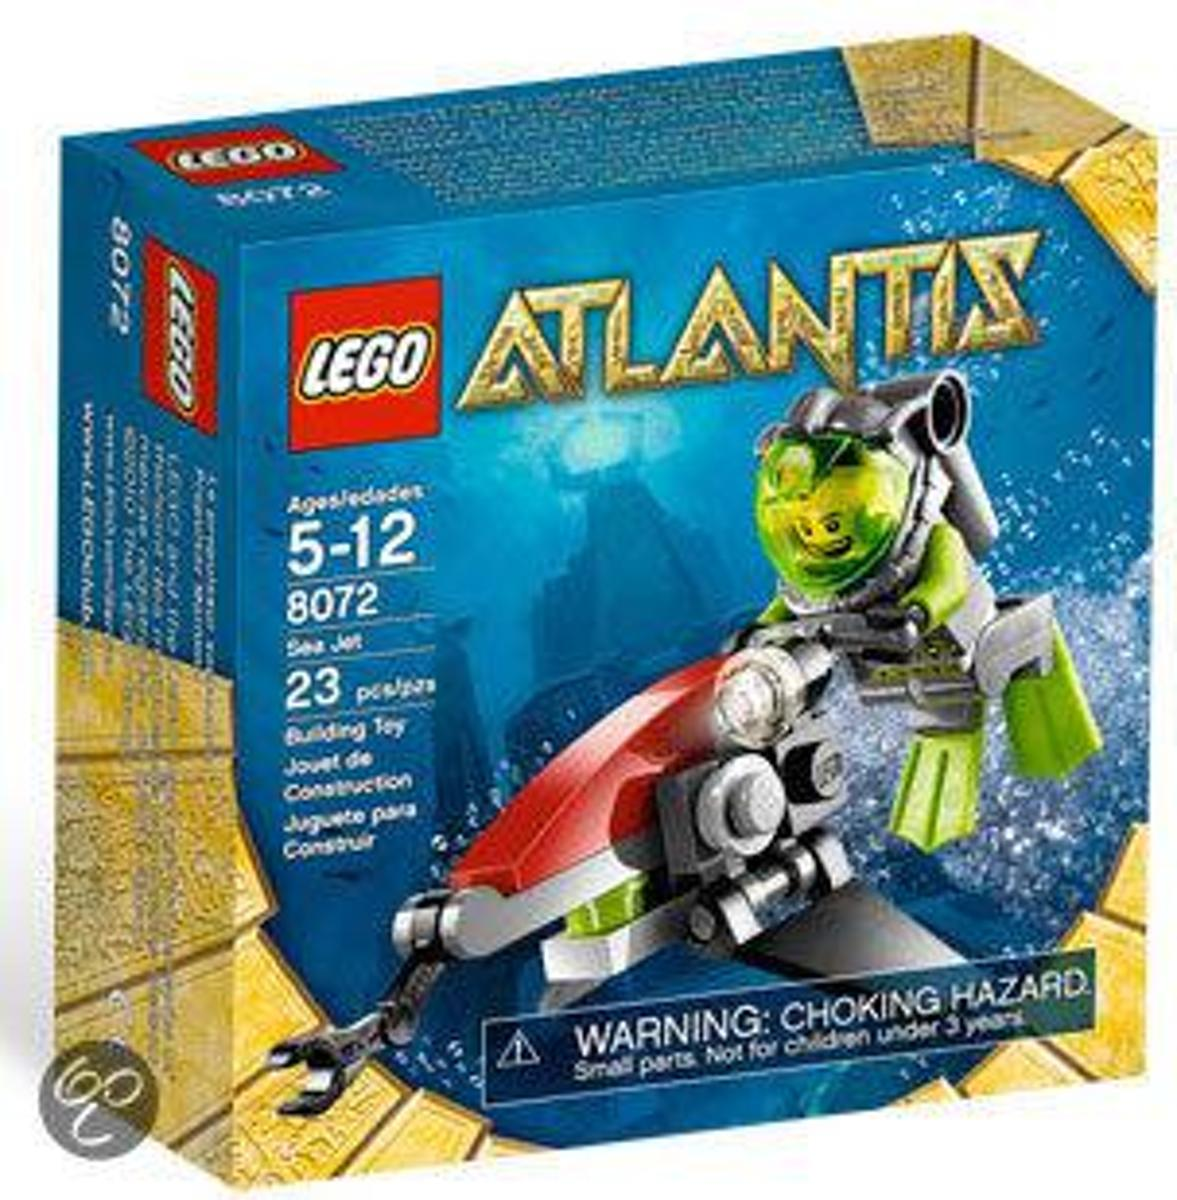 LEGO Atlantis Sea Jet - 8072